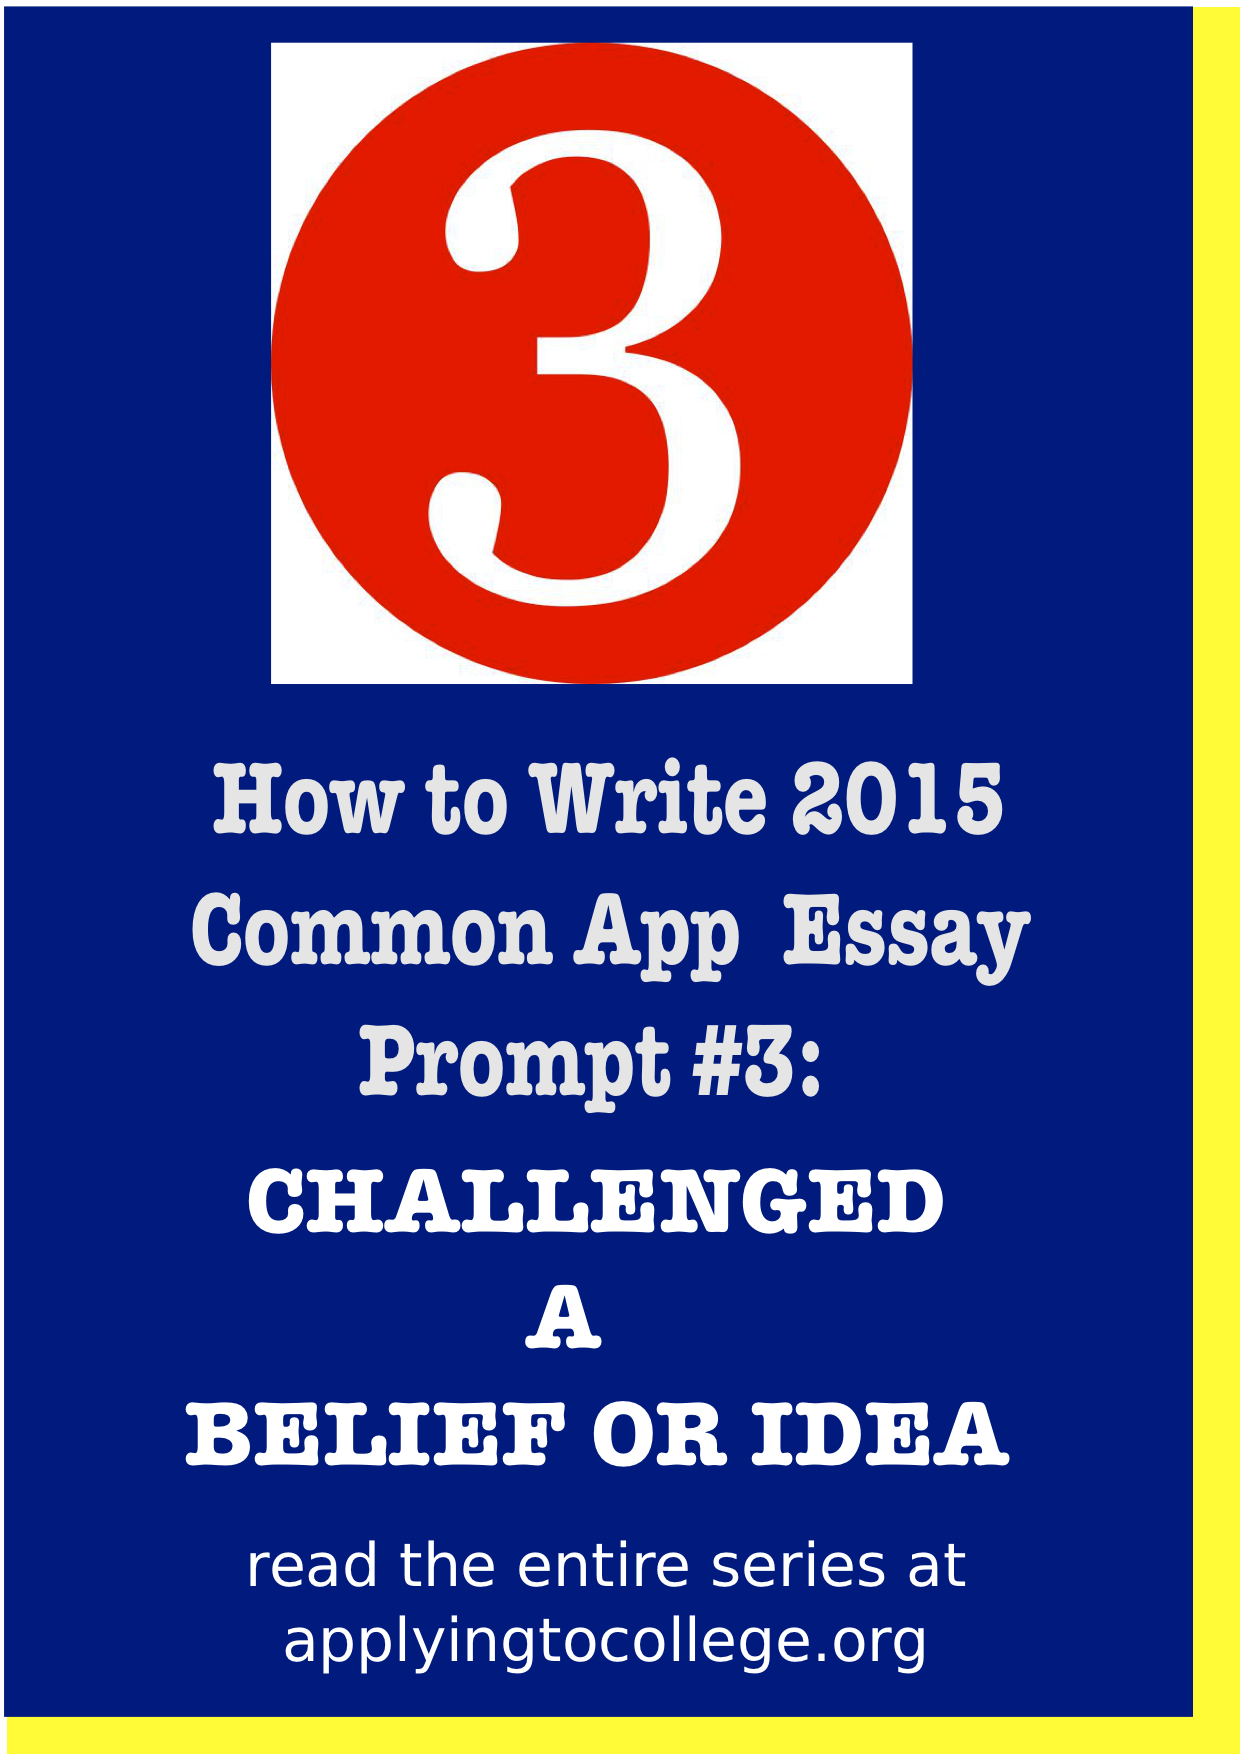 how to write common app essay prompt reflect on a time when you how to write 2015 common app essay 3 reflect on a time when you challenged a belief or idea